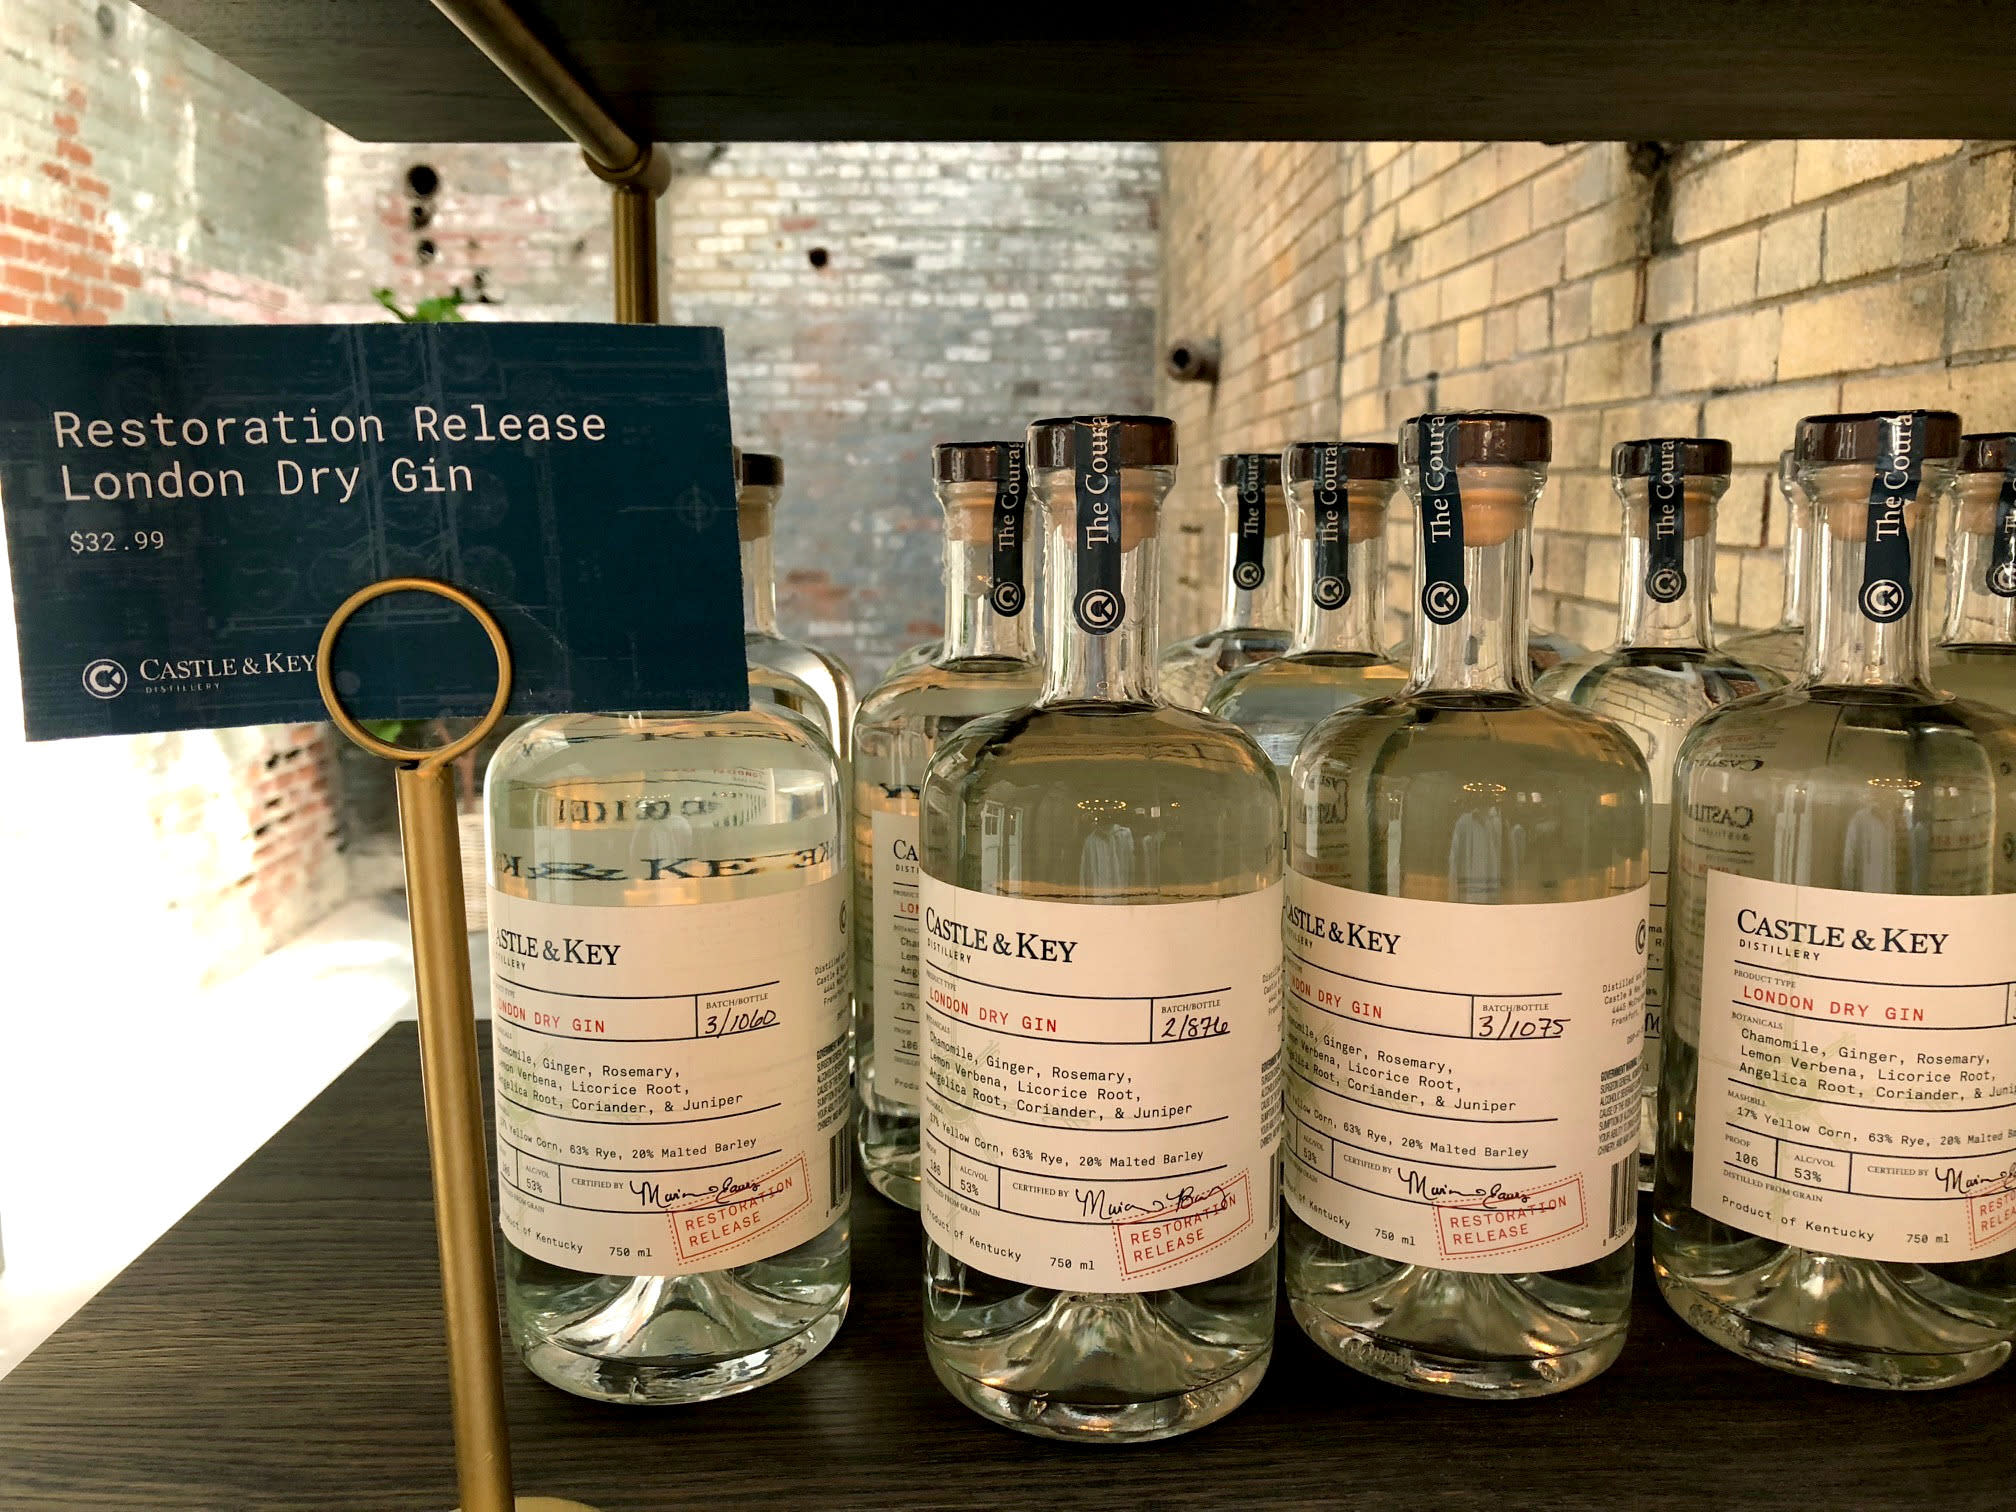 In this Friday, Sept. 14, 2018 photo, bottles of gin produced at Castle & Key Distillery are displayed for sale at the distillery's gift shop in Millville, Ky. Spirits production resumed at the famed distilling site in late 2016, but the new brand's bourbon won't reach consumers until around 2021. (AP Photo/Bruce Schreiner)